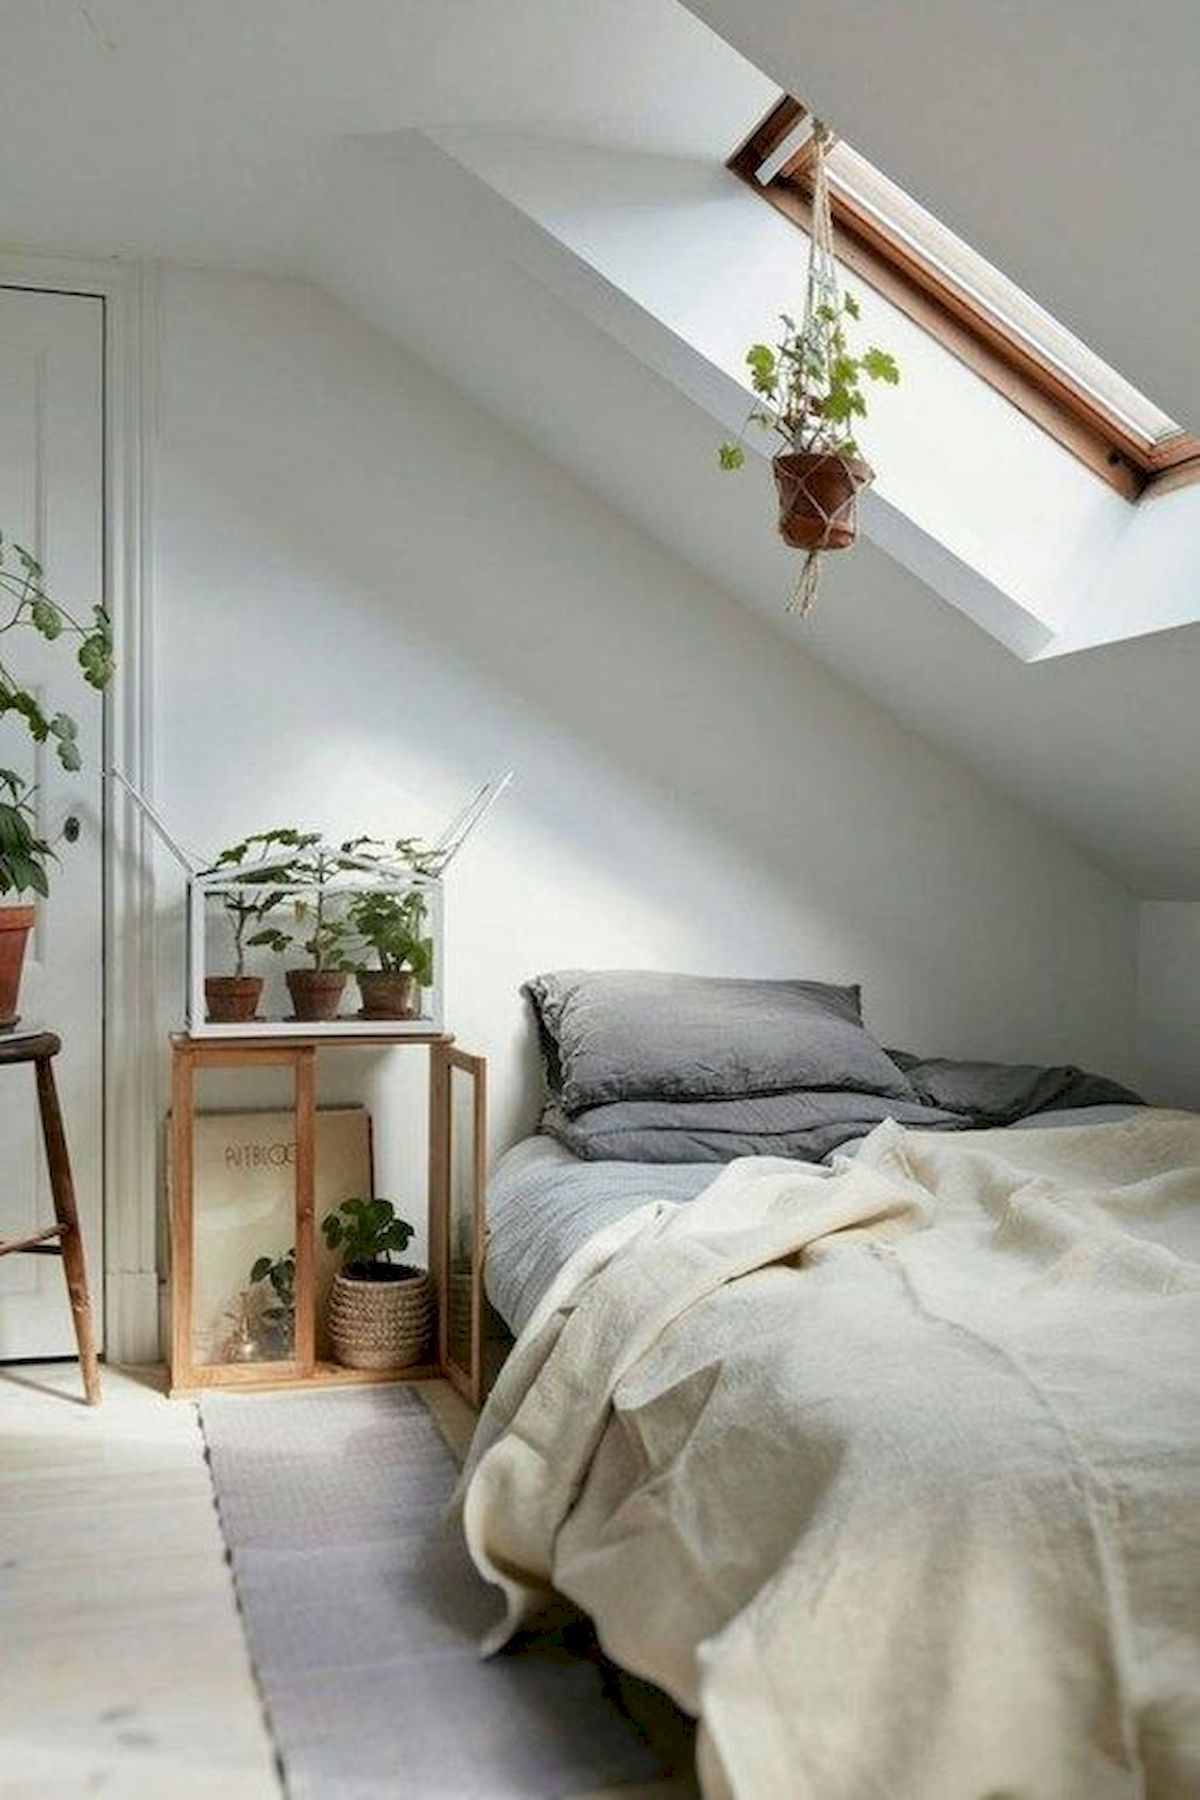 40 Awesome Attic Bedroom Design and Decorating Ideas (19)